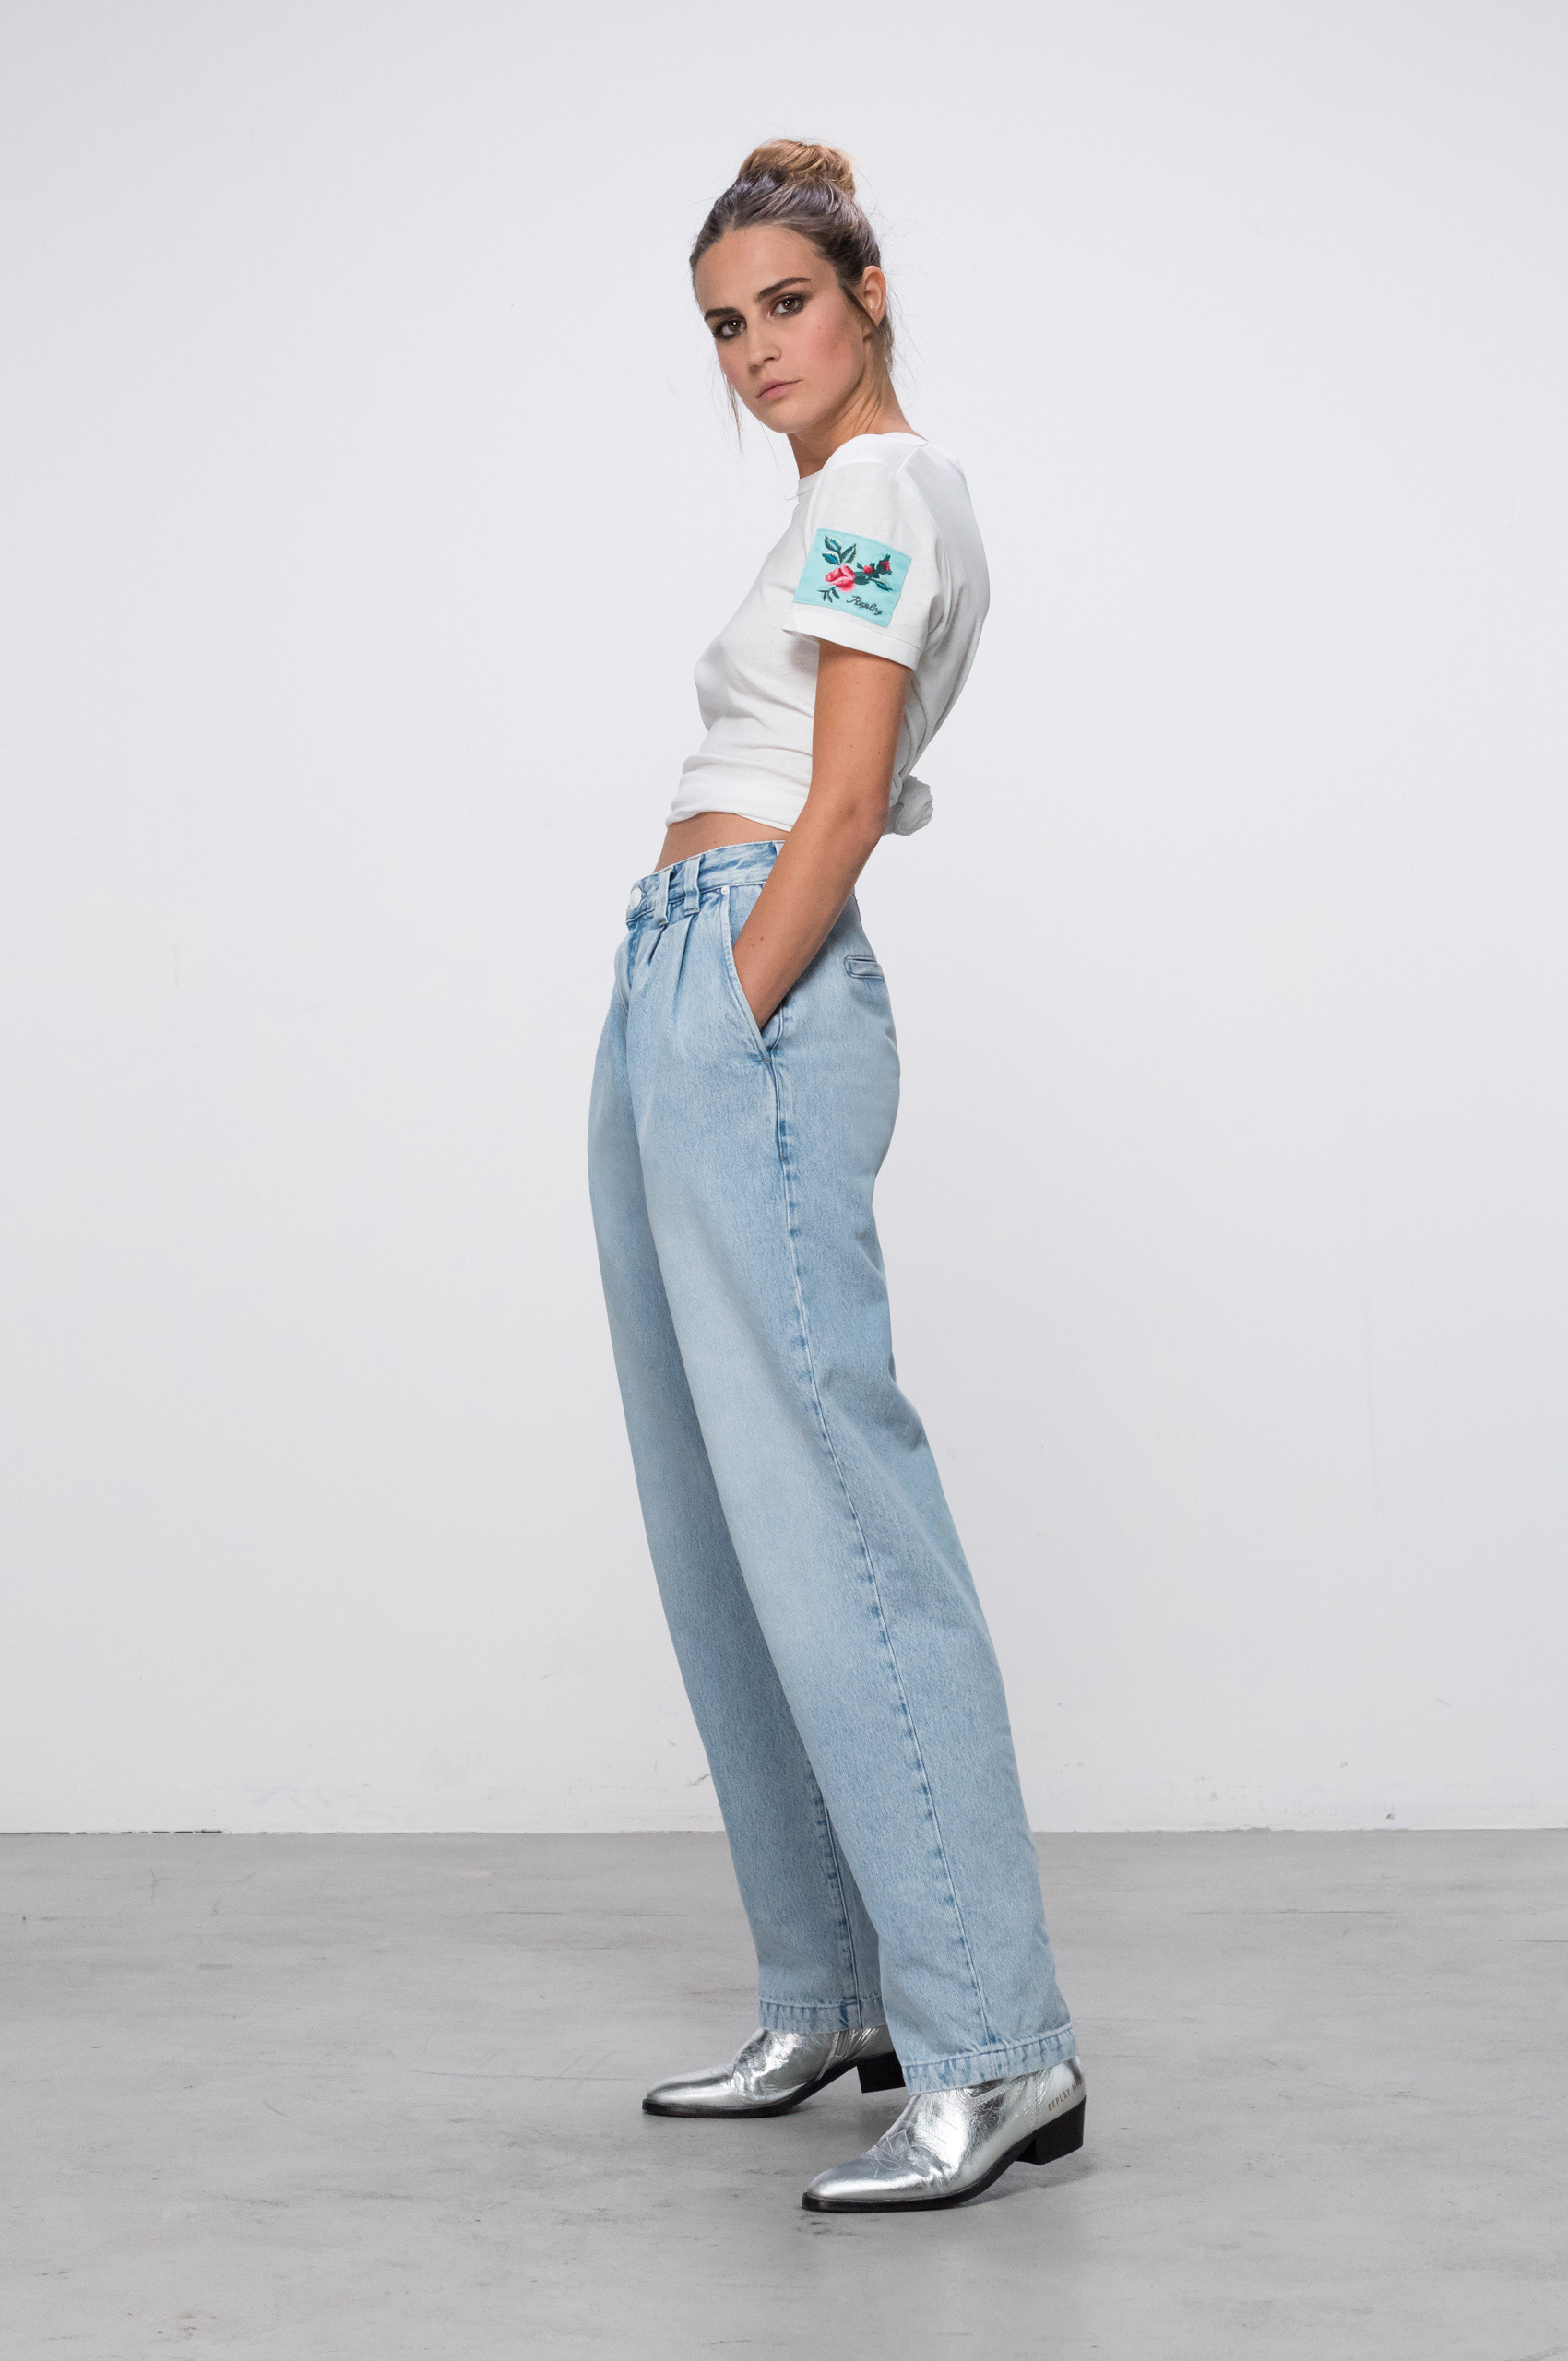 carrot jeans fit guide women